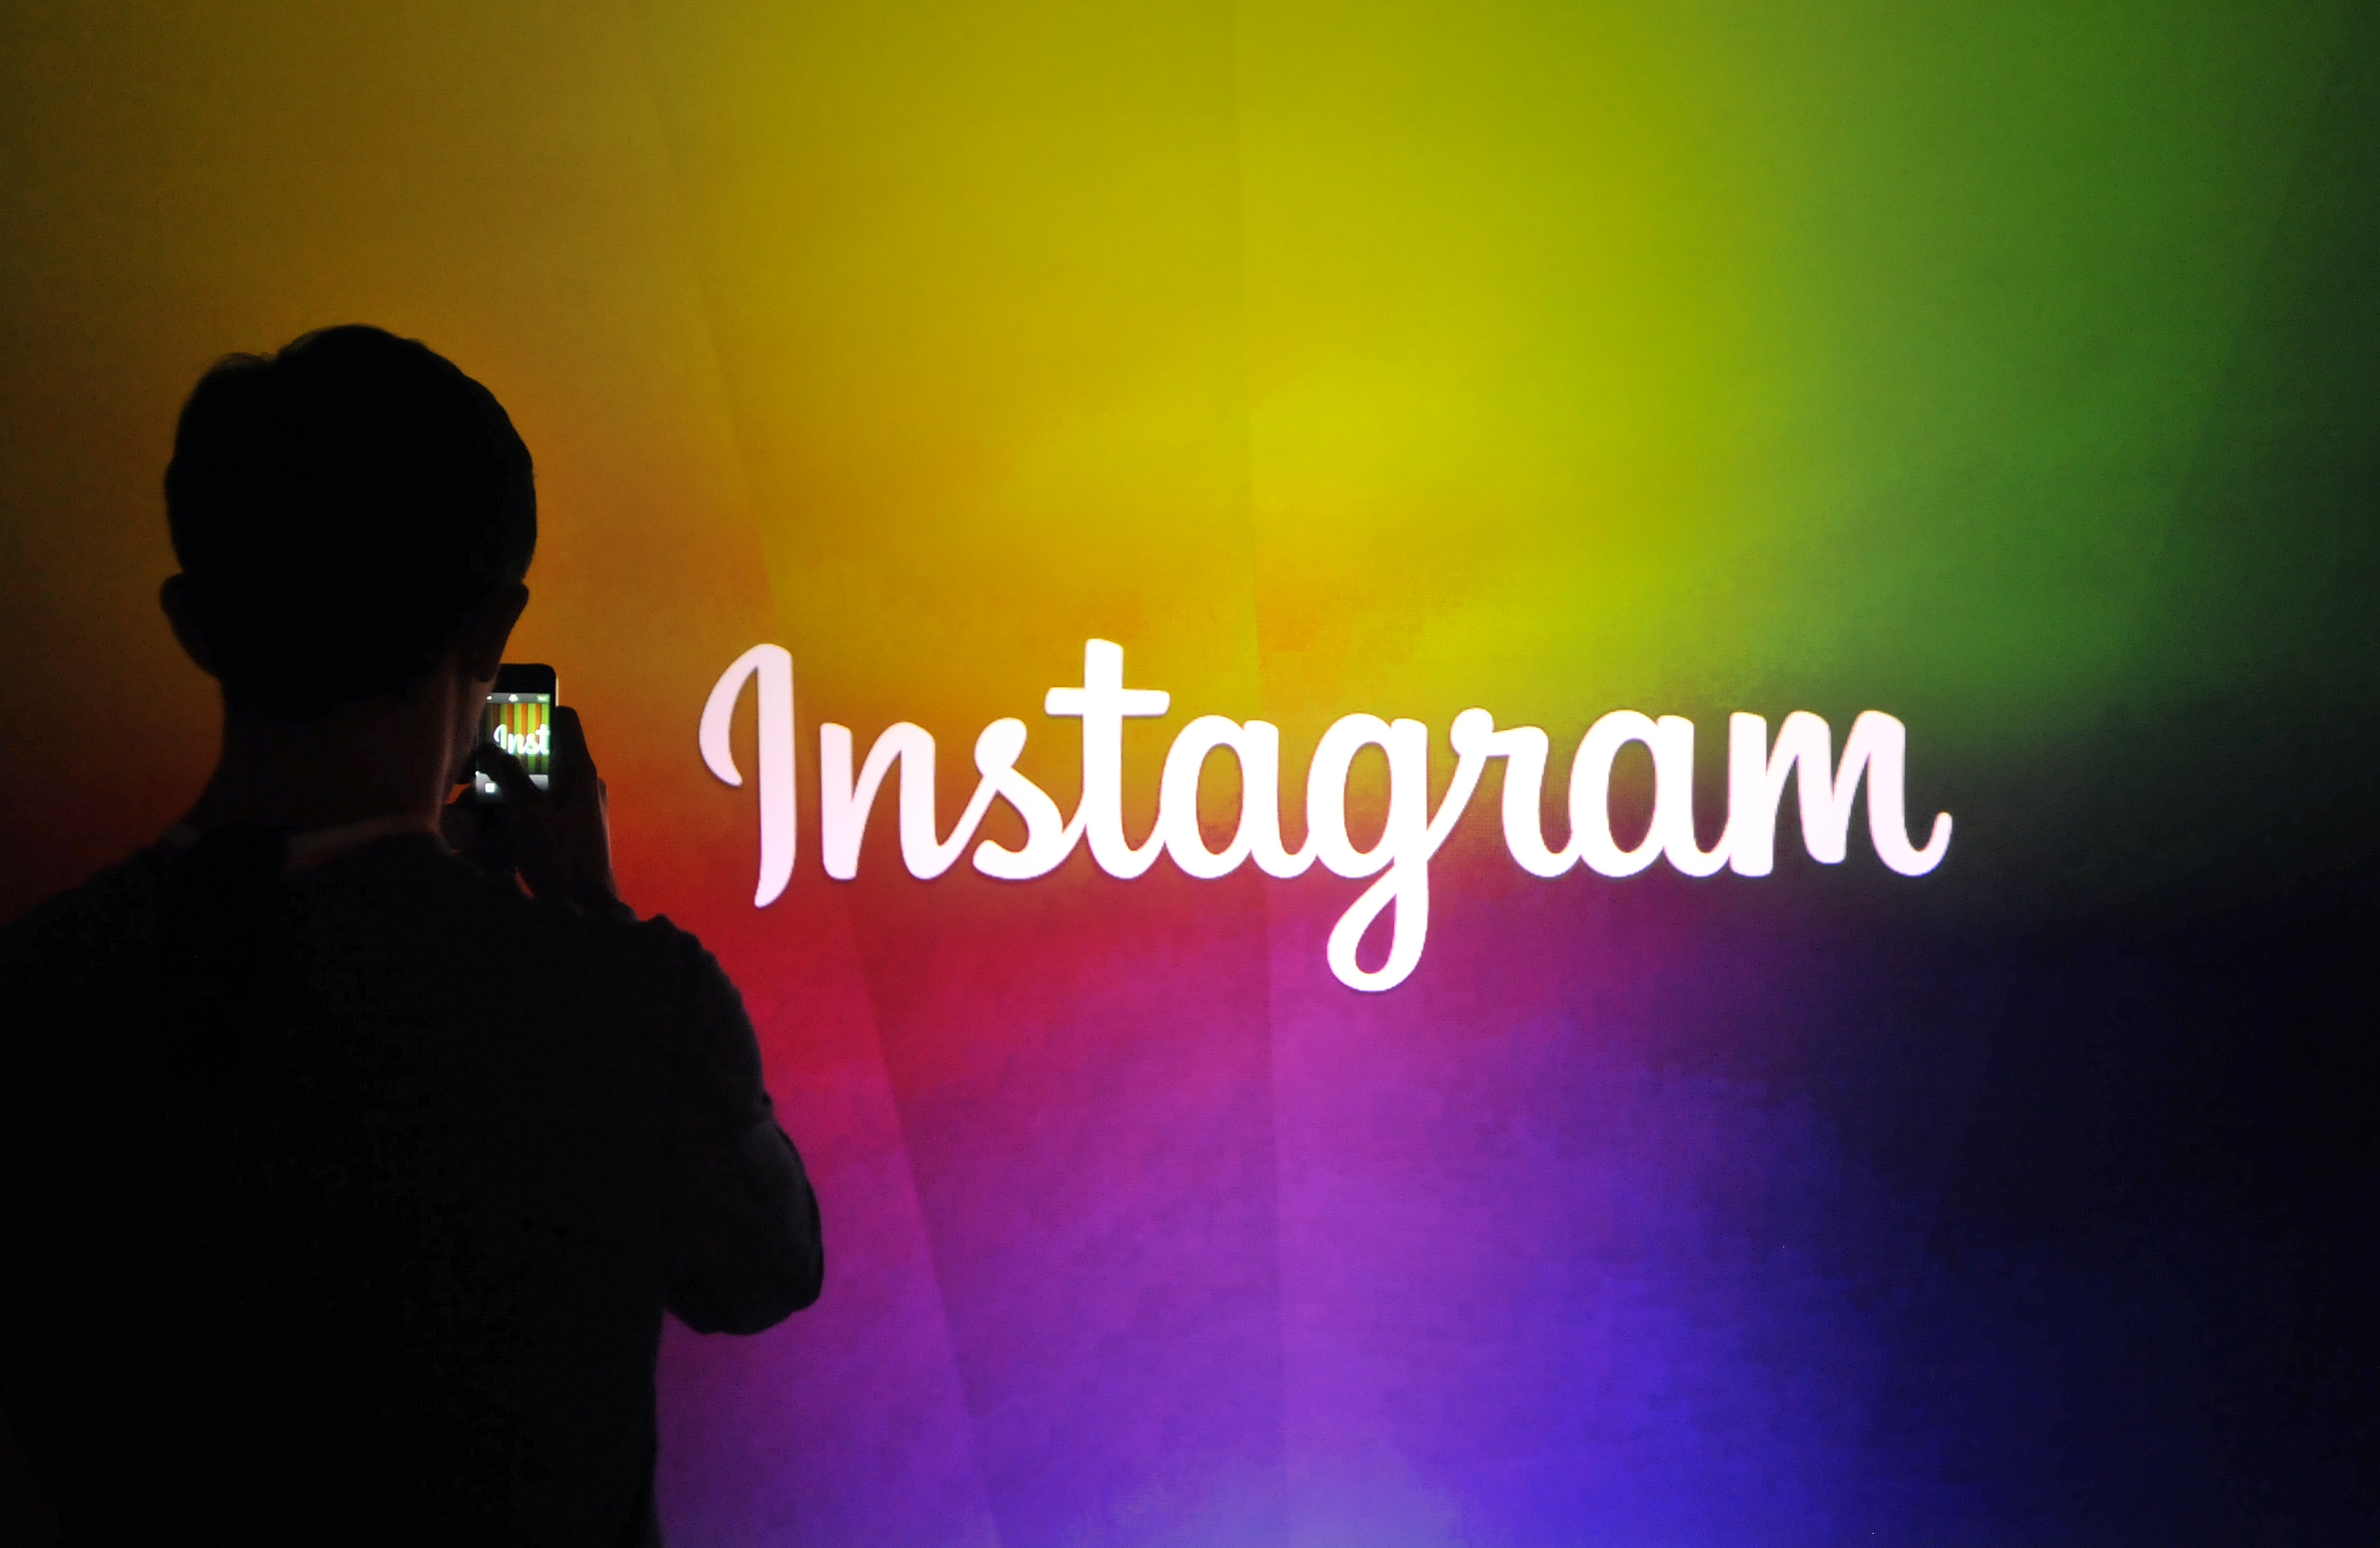 Instagram bans all content promoting conversion therapy